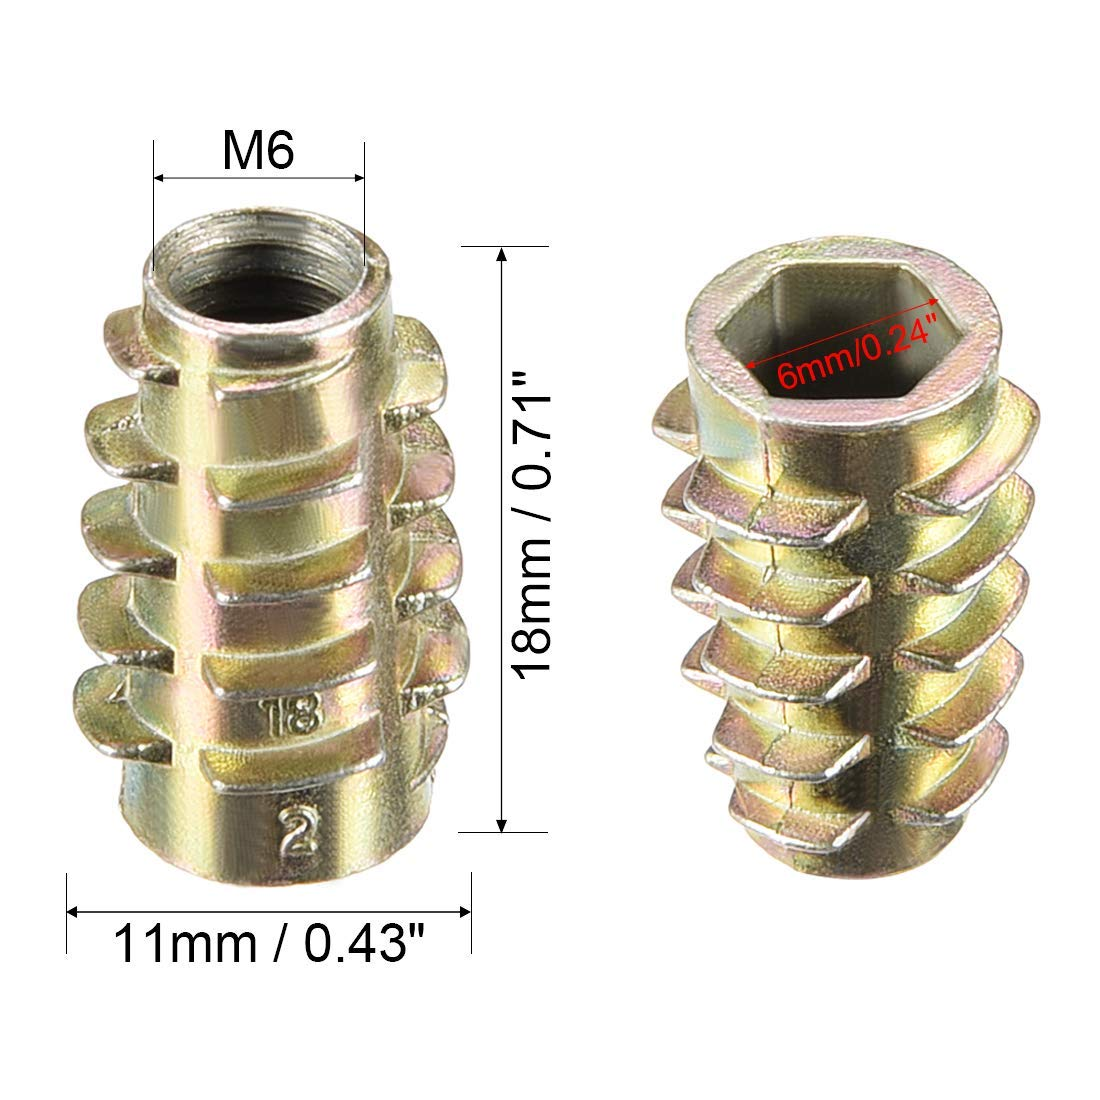 10pcs M6x18mm Threaded Insert Nuts Zinc Alloy Hex-Flush M6 Internal Threads 18mm Length